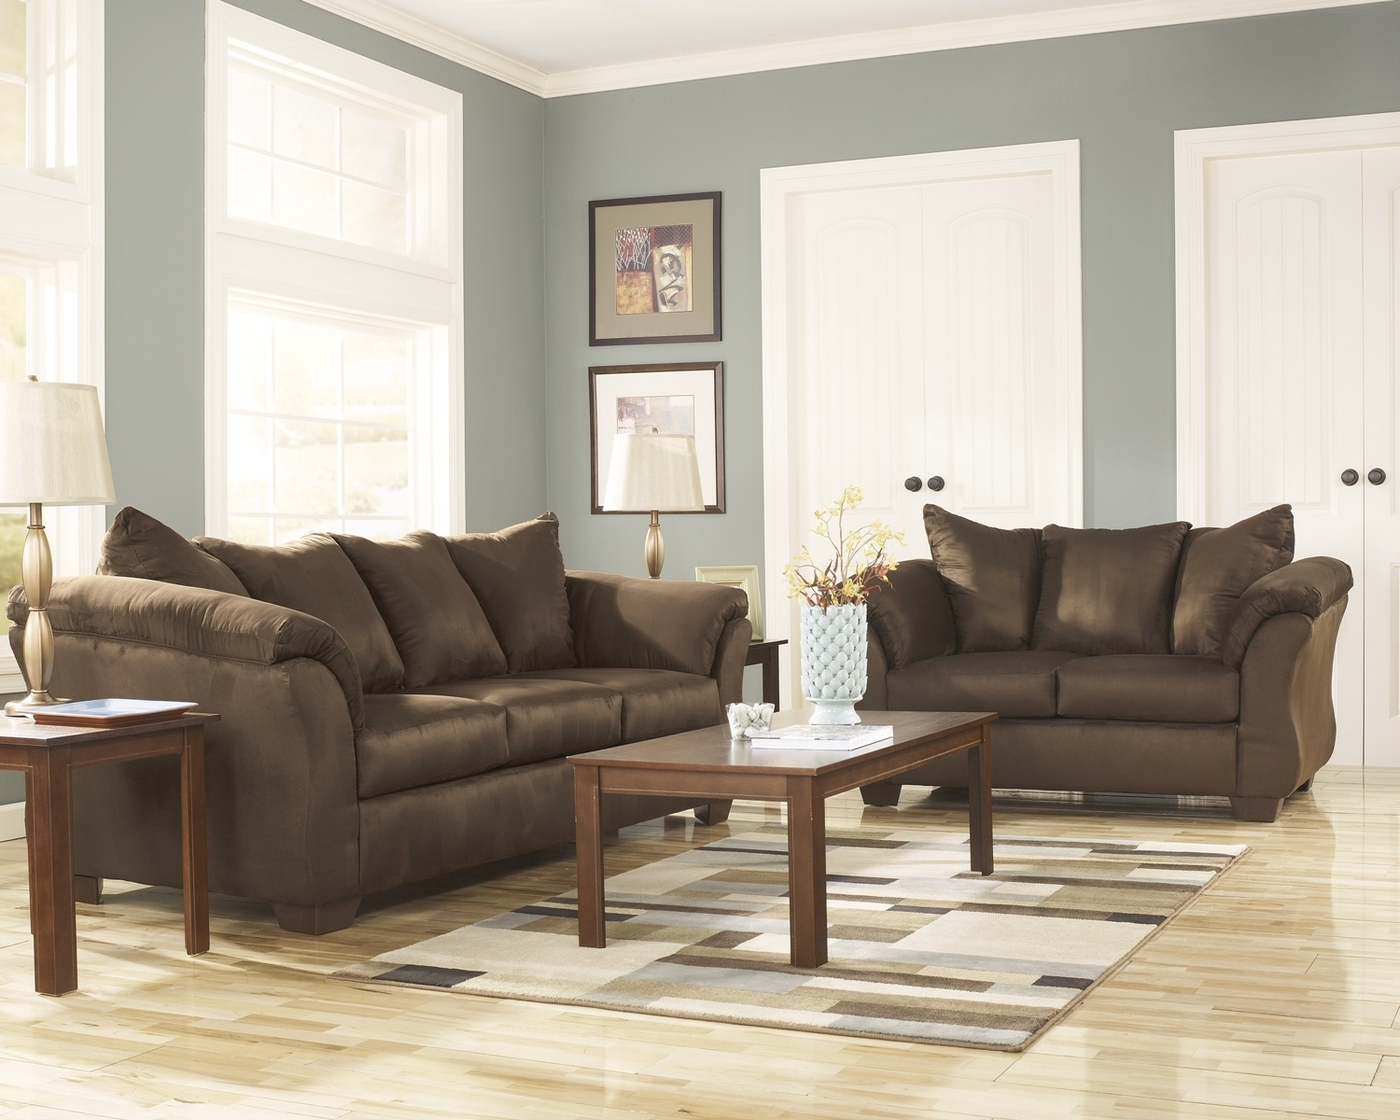 microfiber living room furniture decorating ideas light blue walls luna cafe chocolate sofa loveseat casual details about set by ashley